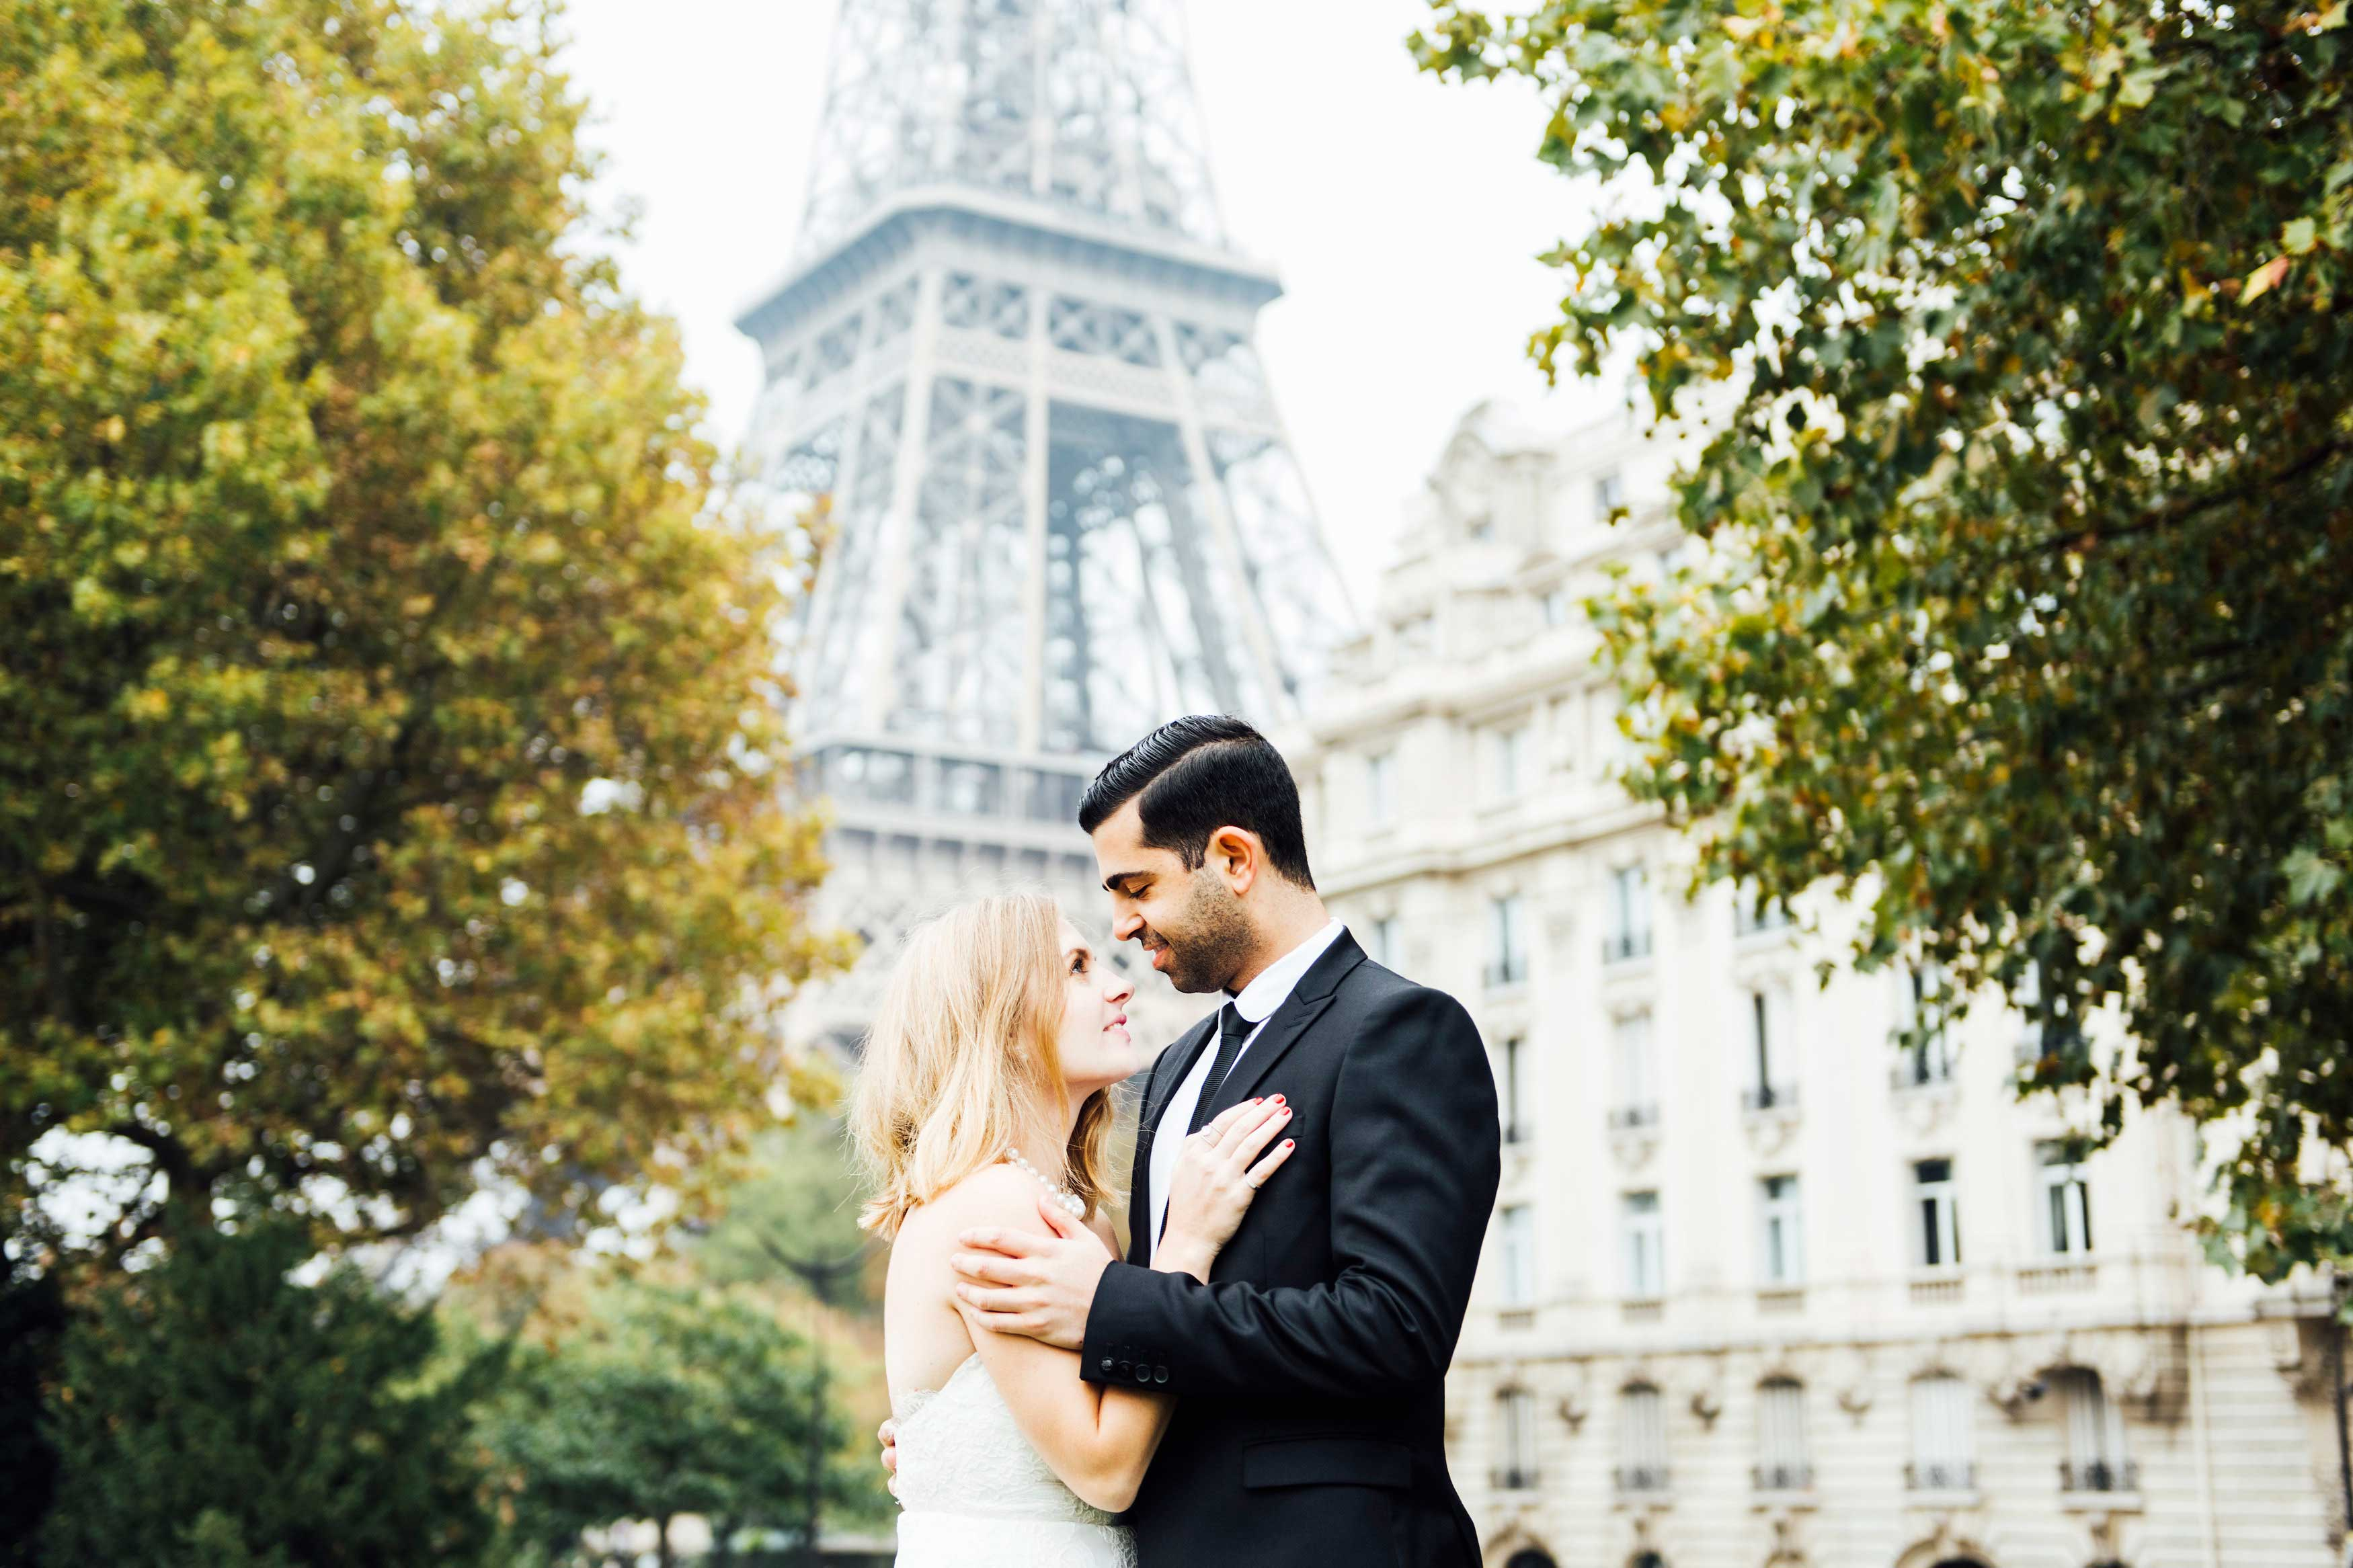 Sabrina Dahan romantic engagement photo in Paris